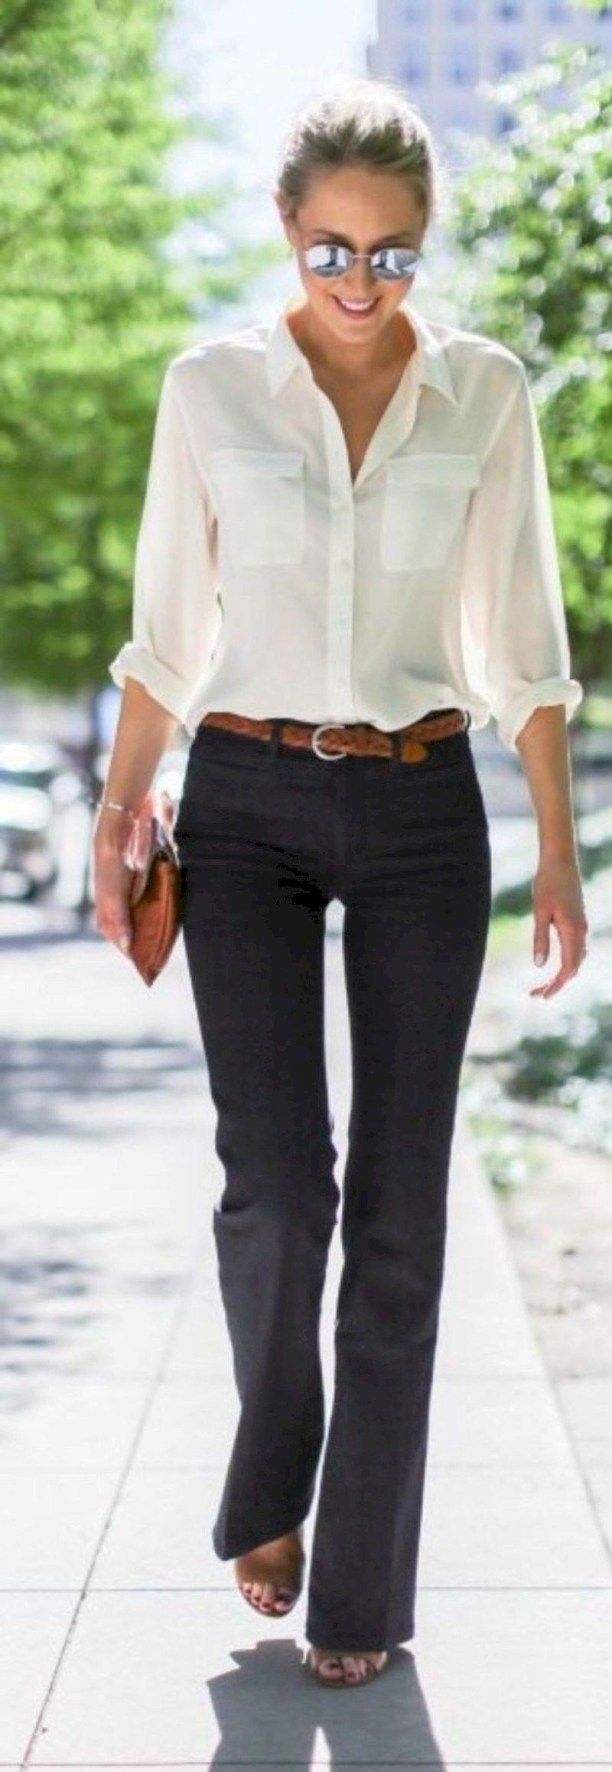 40 Impressive Business Casual Outfits for Spring 2019